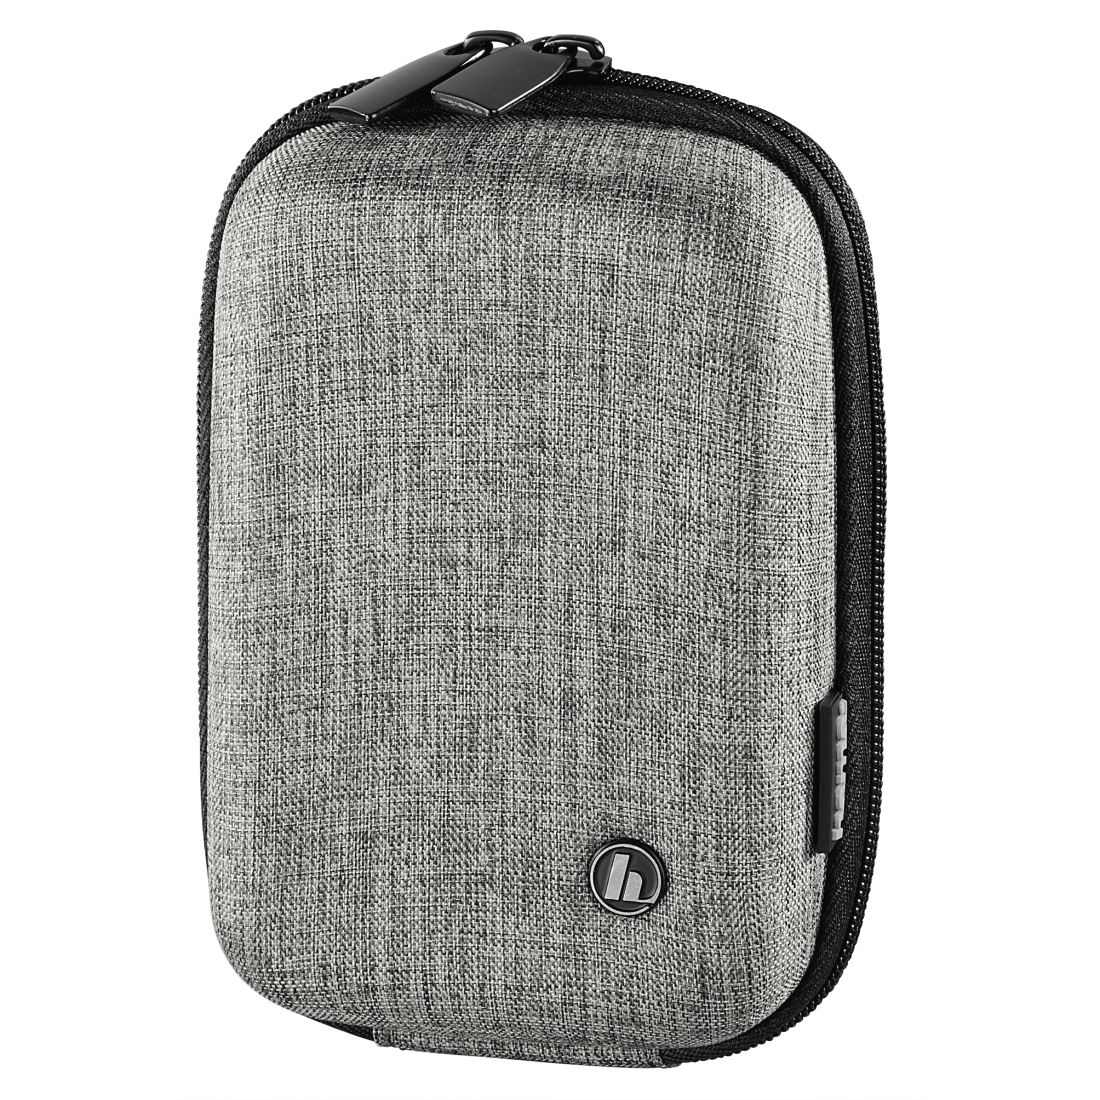 "abx High-Res Image - Hama, ""Hardcase Trinidad"" Camera Case, 60 M, grey"